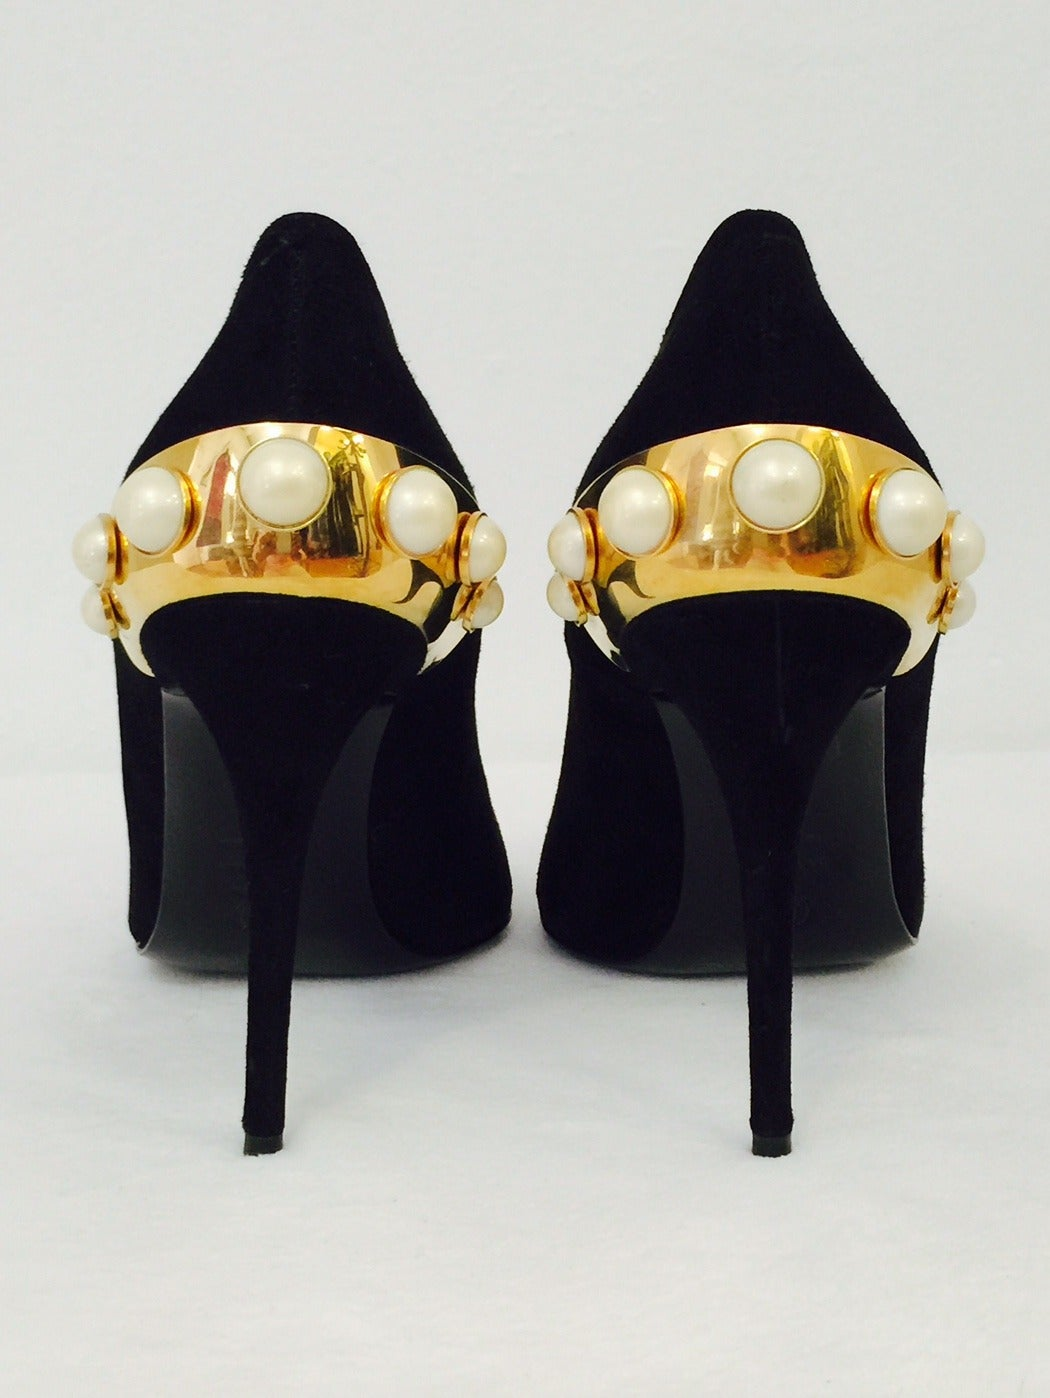 Awe-Inspiring Alexander McQueen Black Suede Evening Pumps with Pearls 5